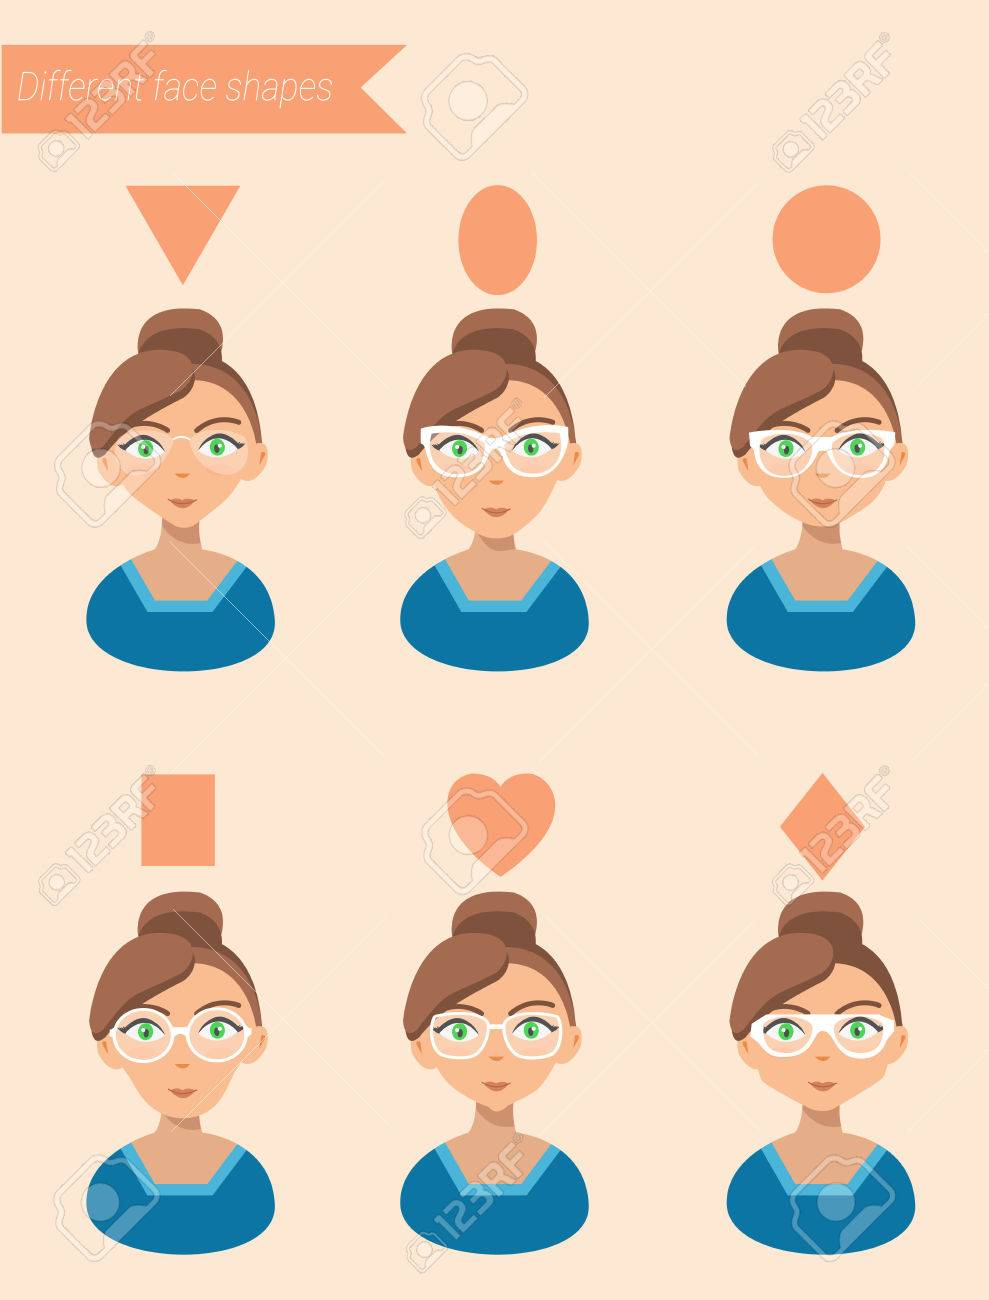 c47255940ec Womens Sunglasses Shapes for different face shapes vector illustration Stock  Vector - 58733271